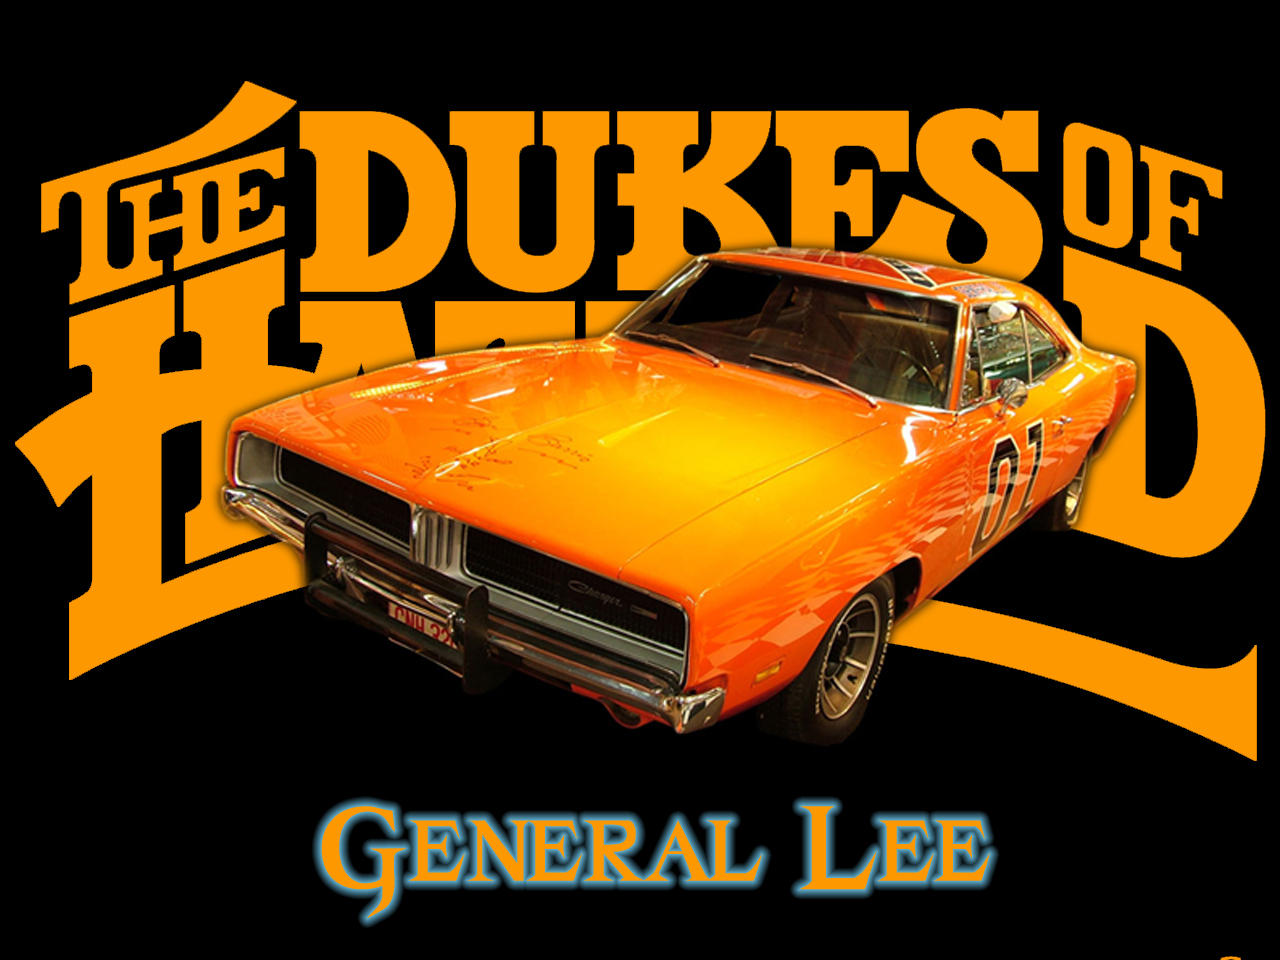 dukes of hazzard general lee wallpaper images pictures